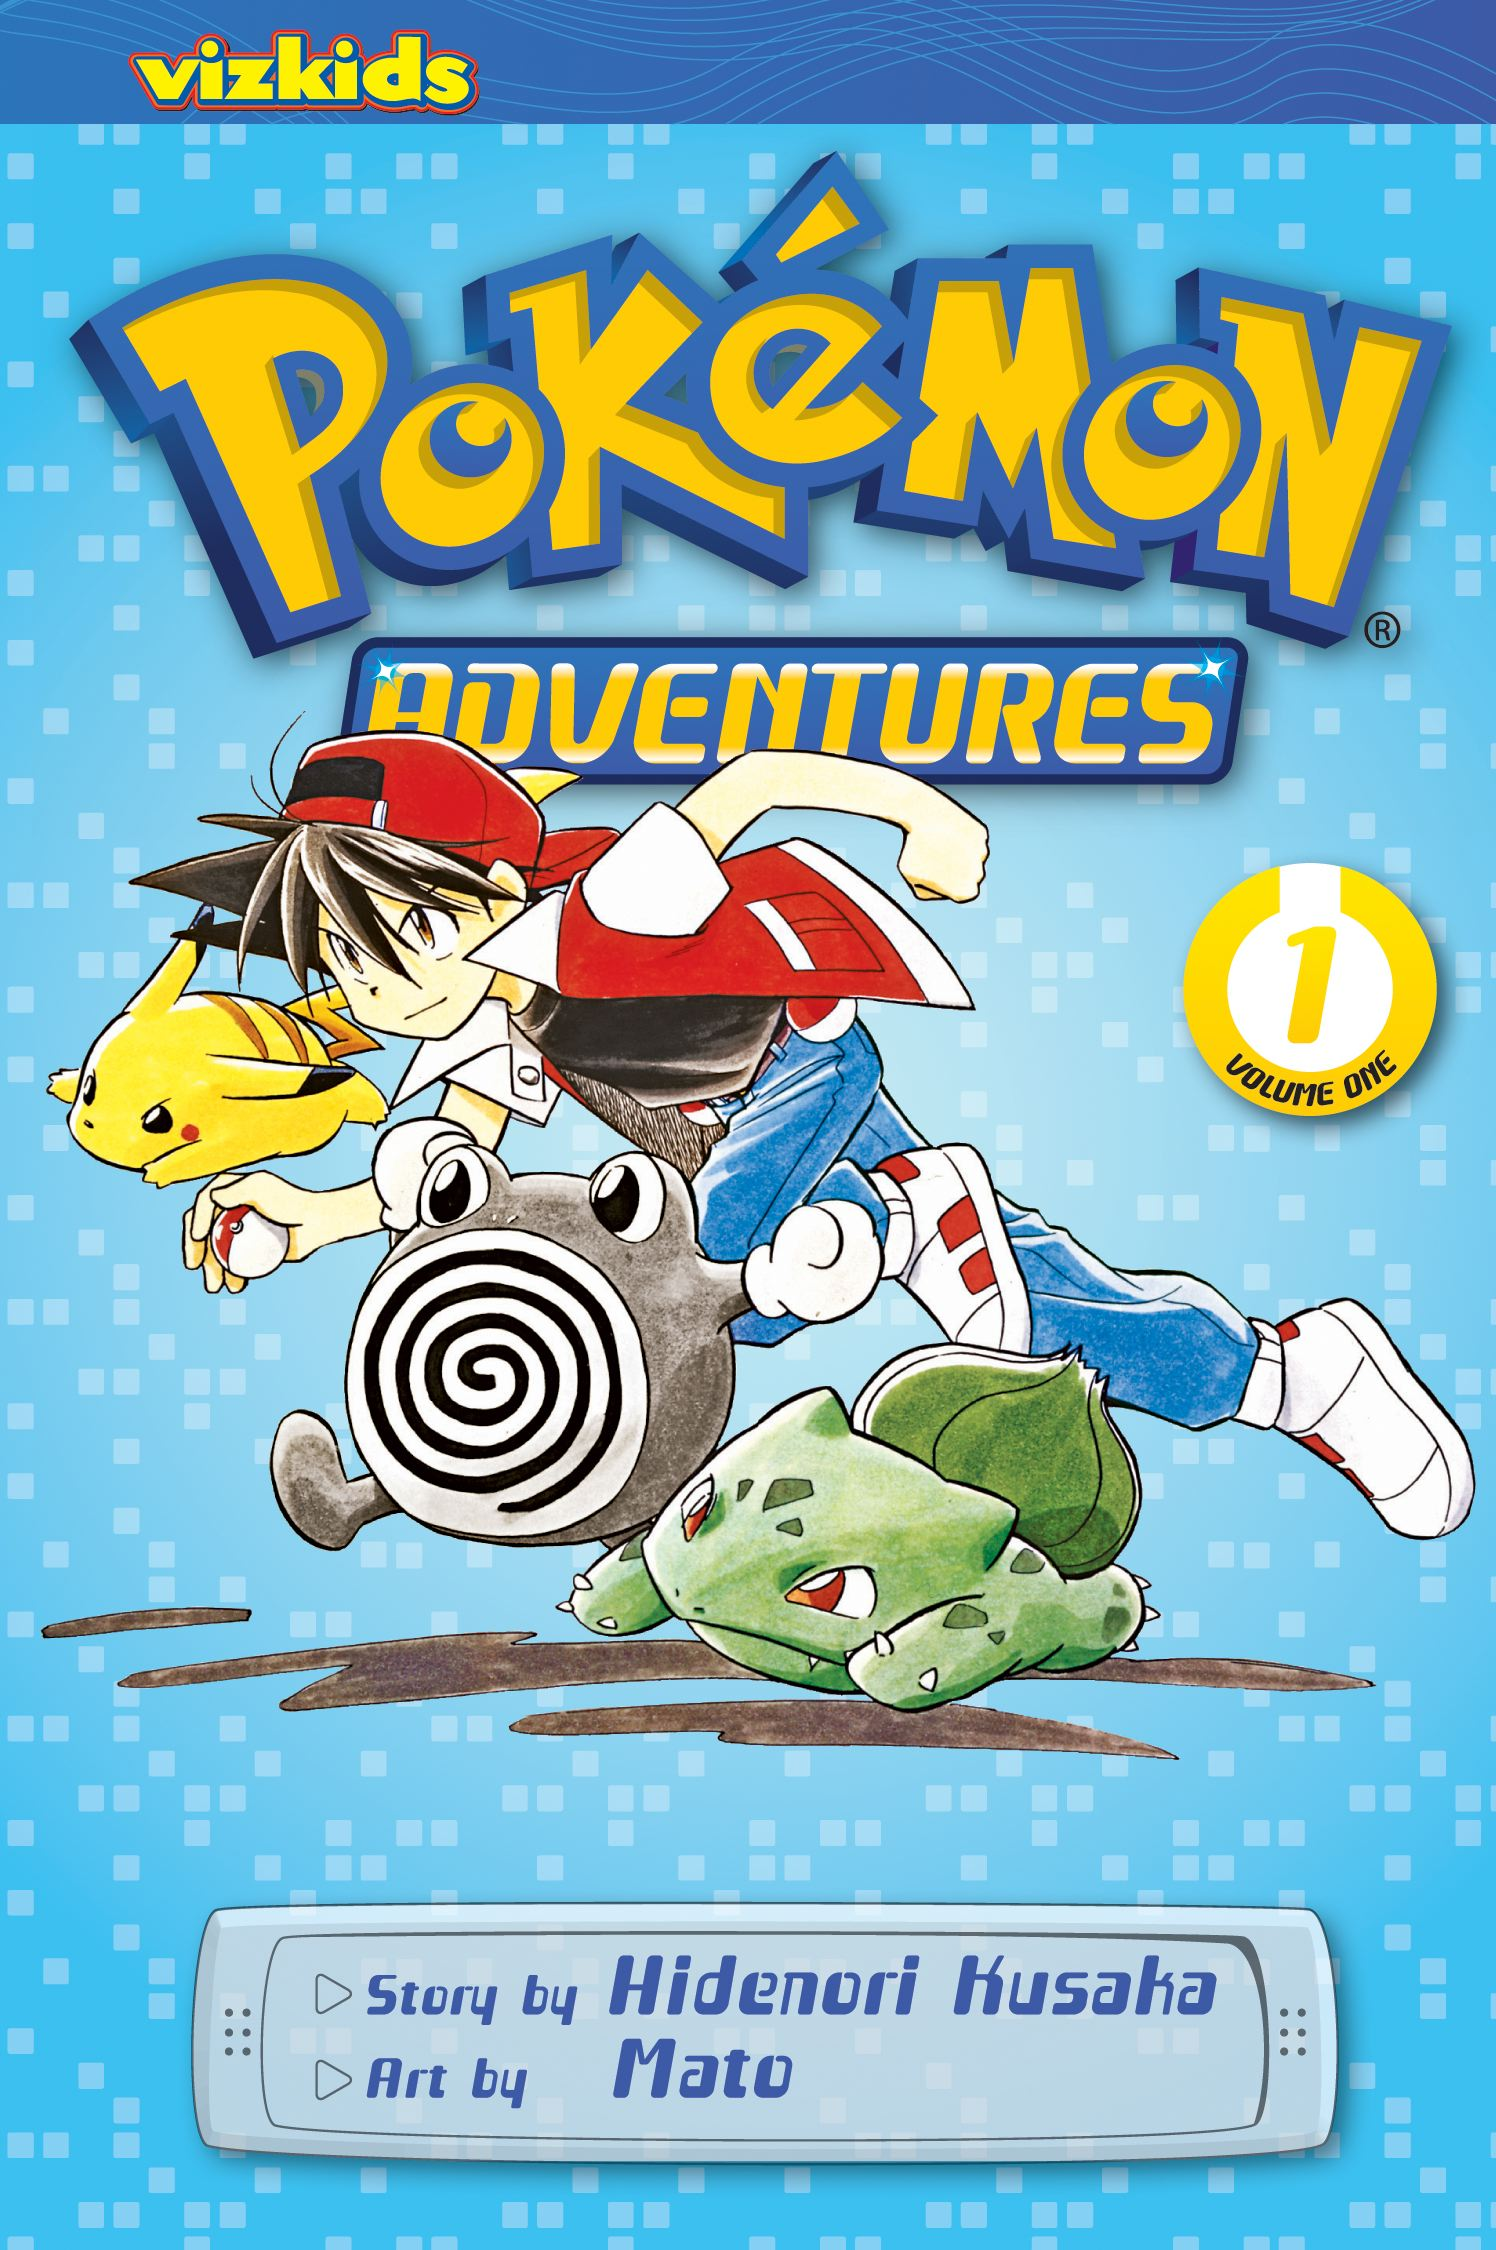 Pokémon Adventures (Red and Blue), Vol. 1 | Book by Hidenori ...